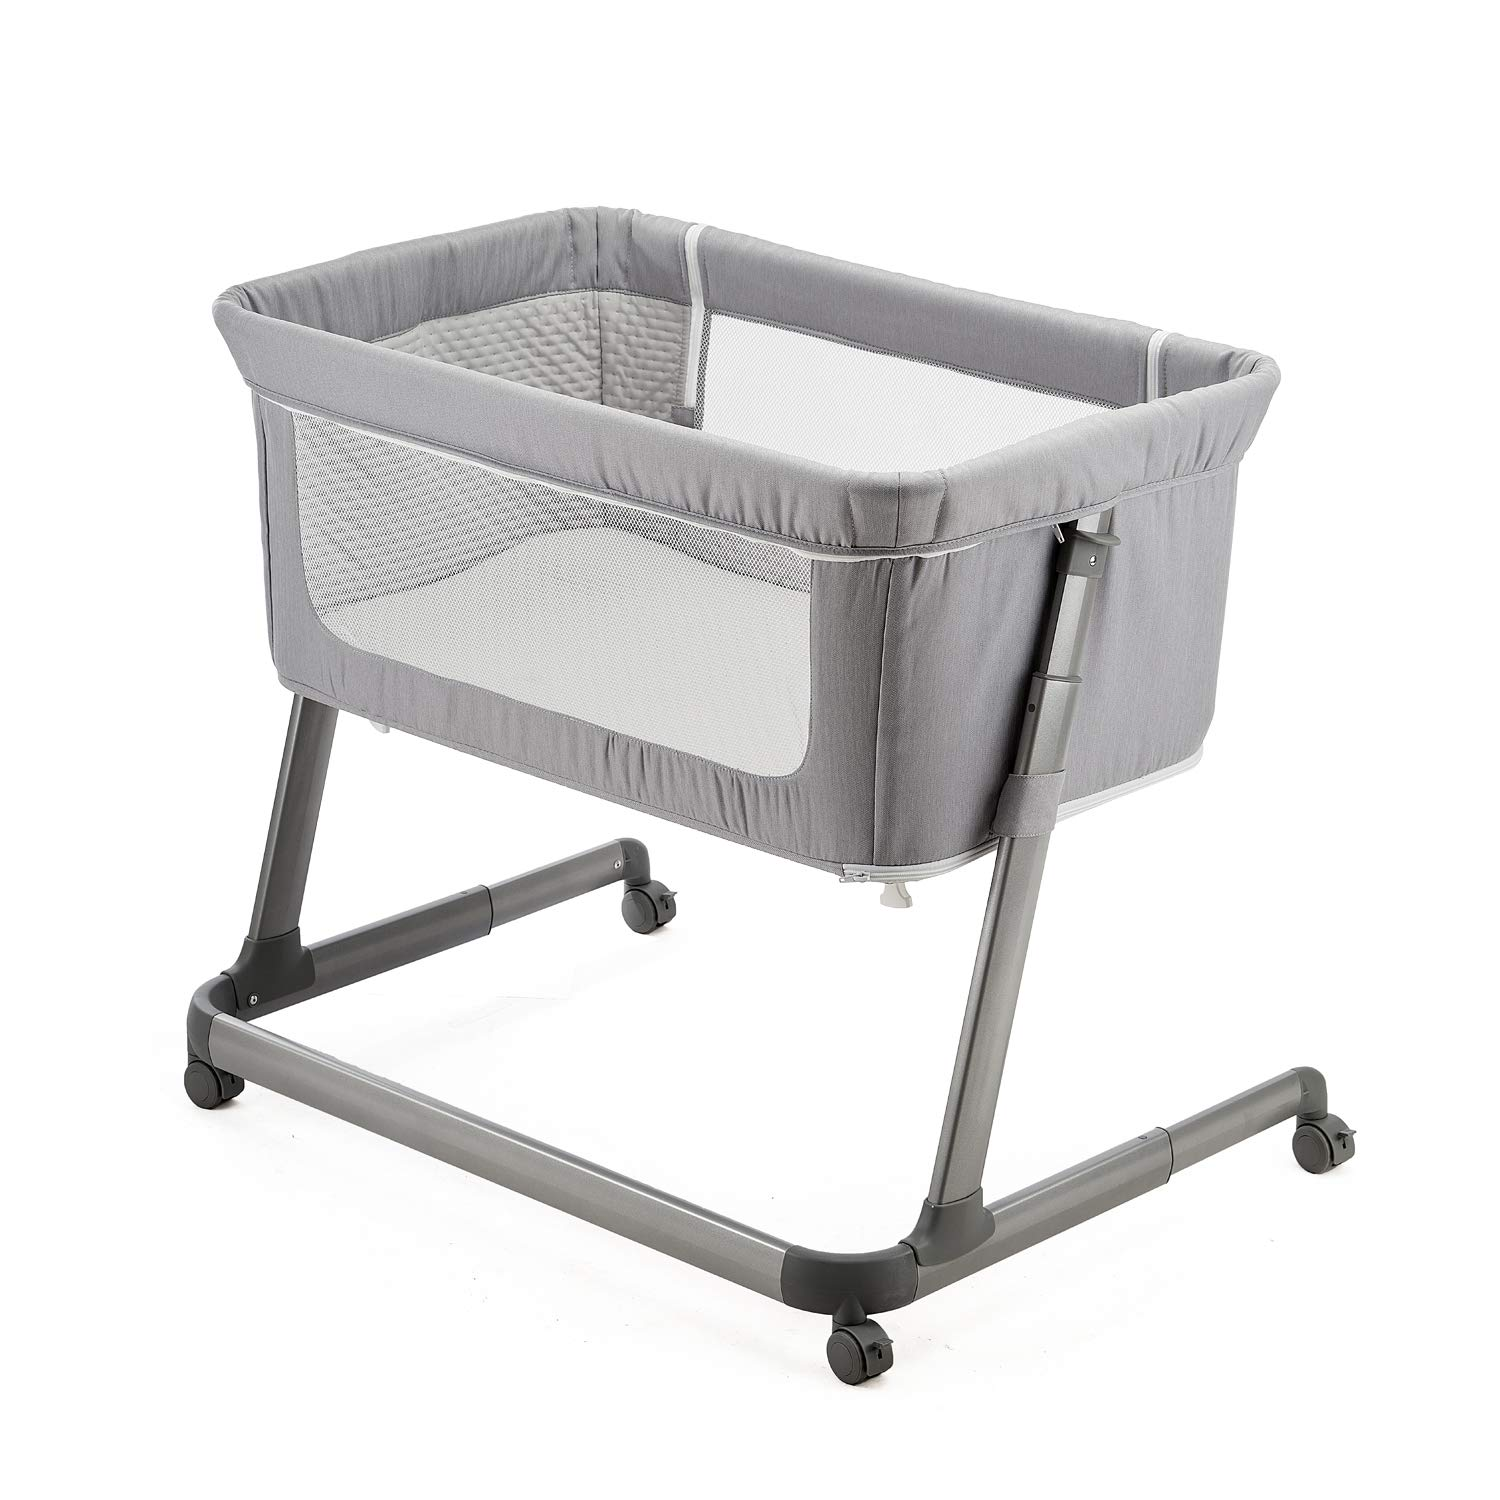 Easy Folding Portable Crib Khaki Pamobabe Bedside Sleeper,Baby Bed to Bed,Babies Crib Bed